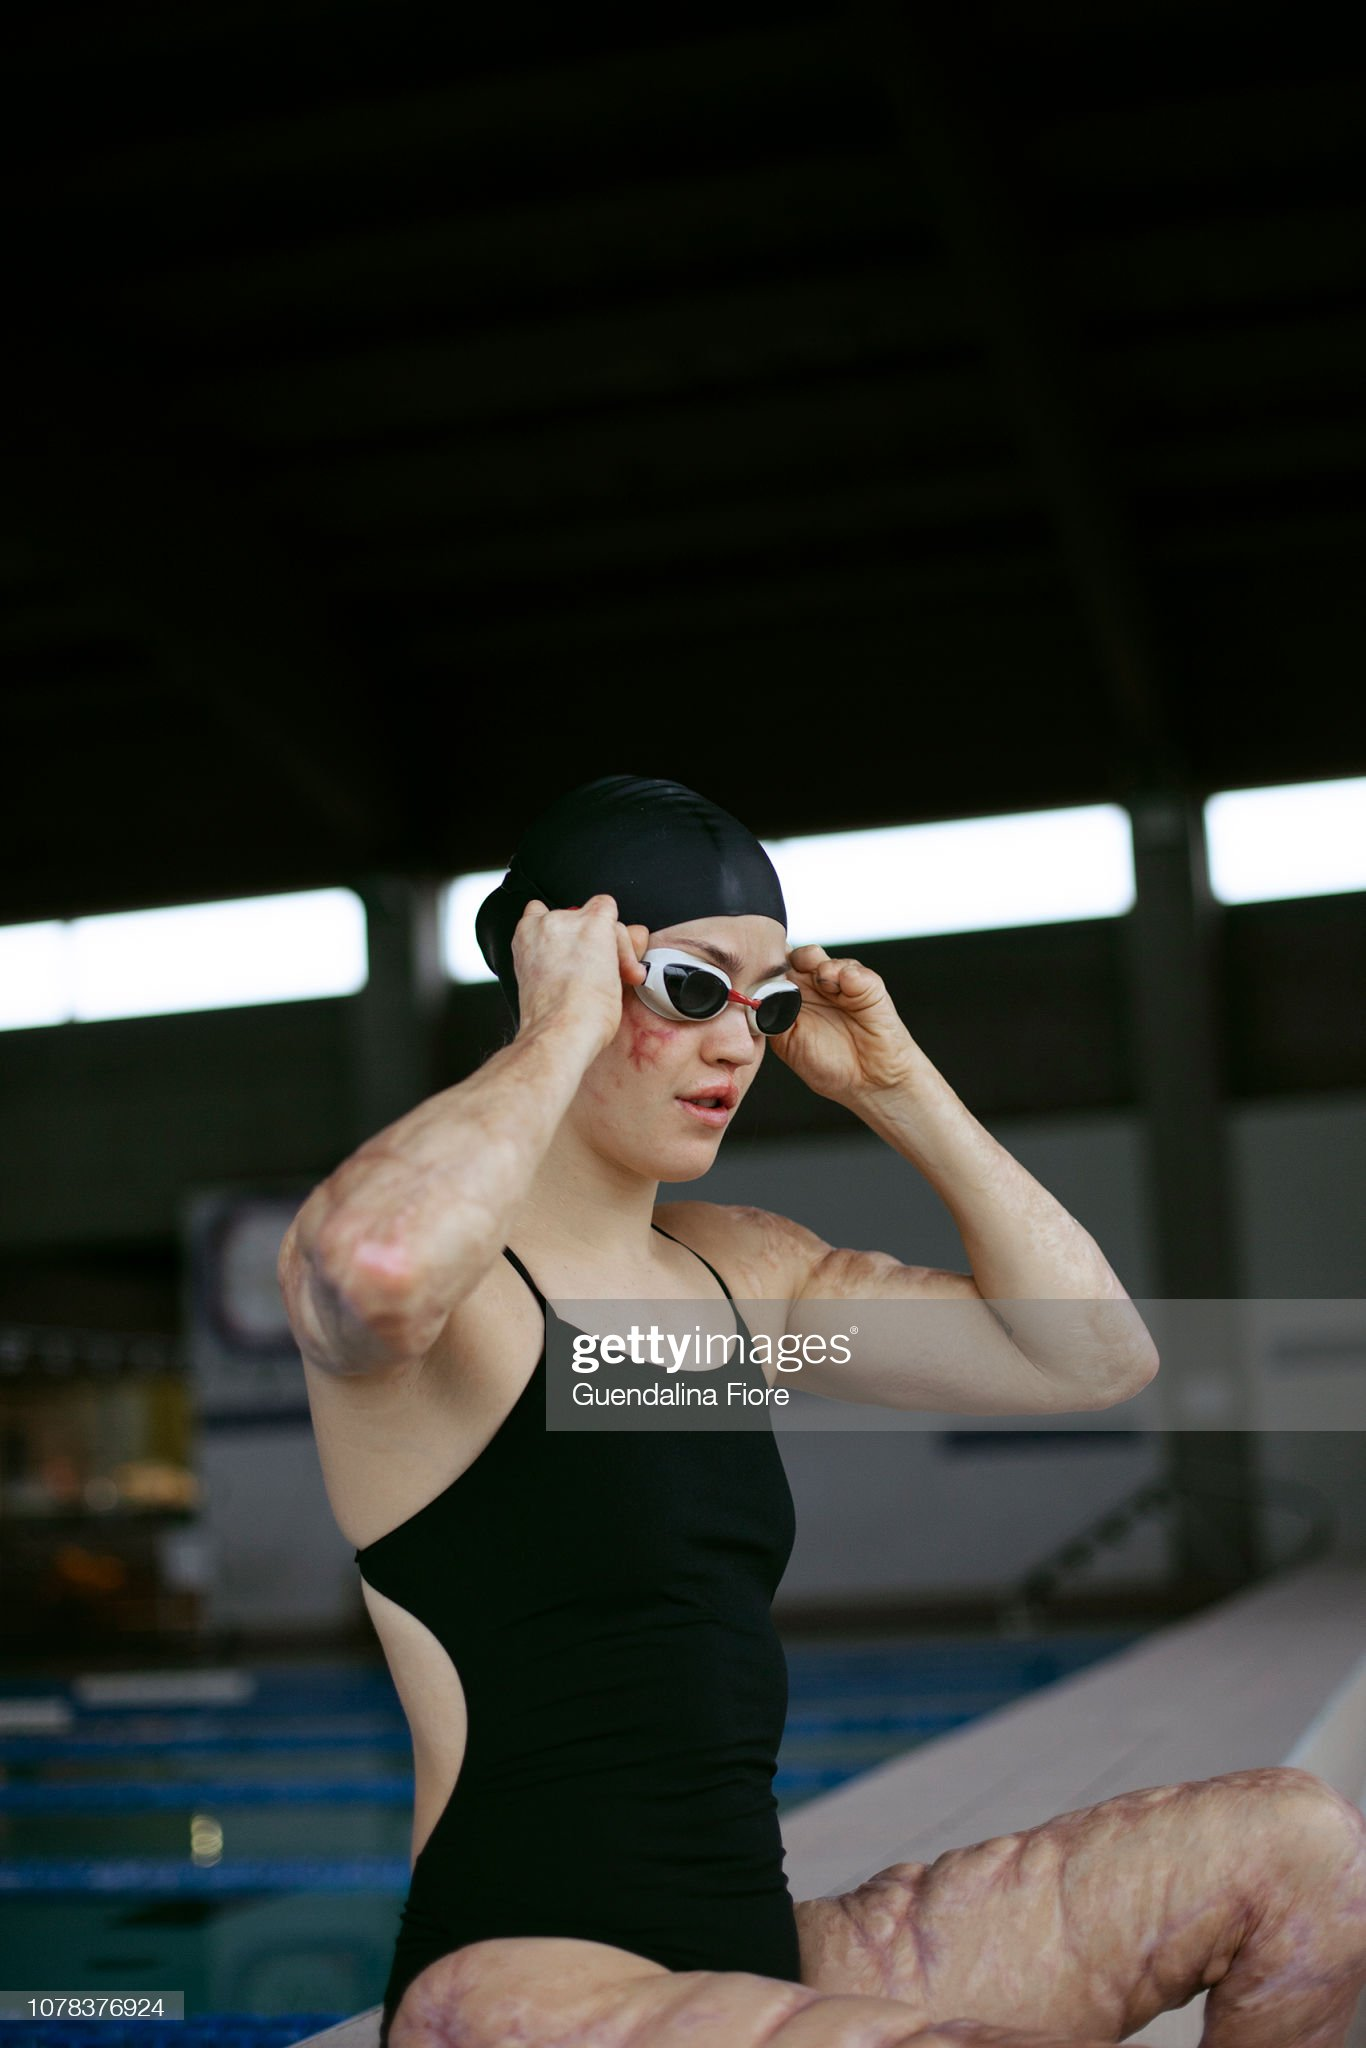 Girl training in the swimming pool : Stock Photo